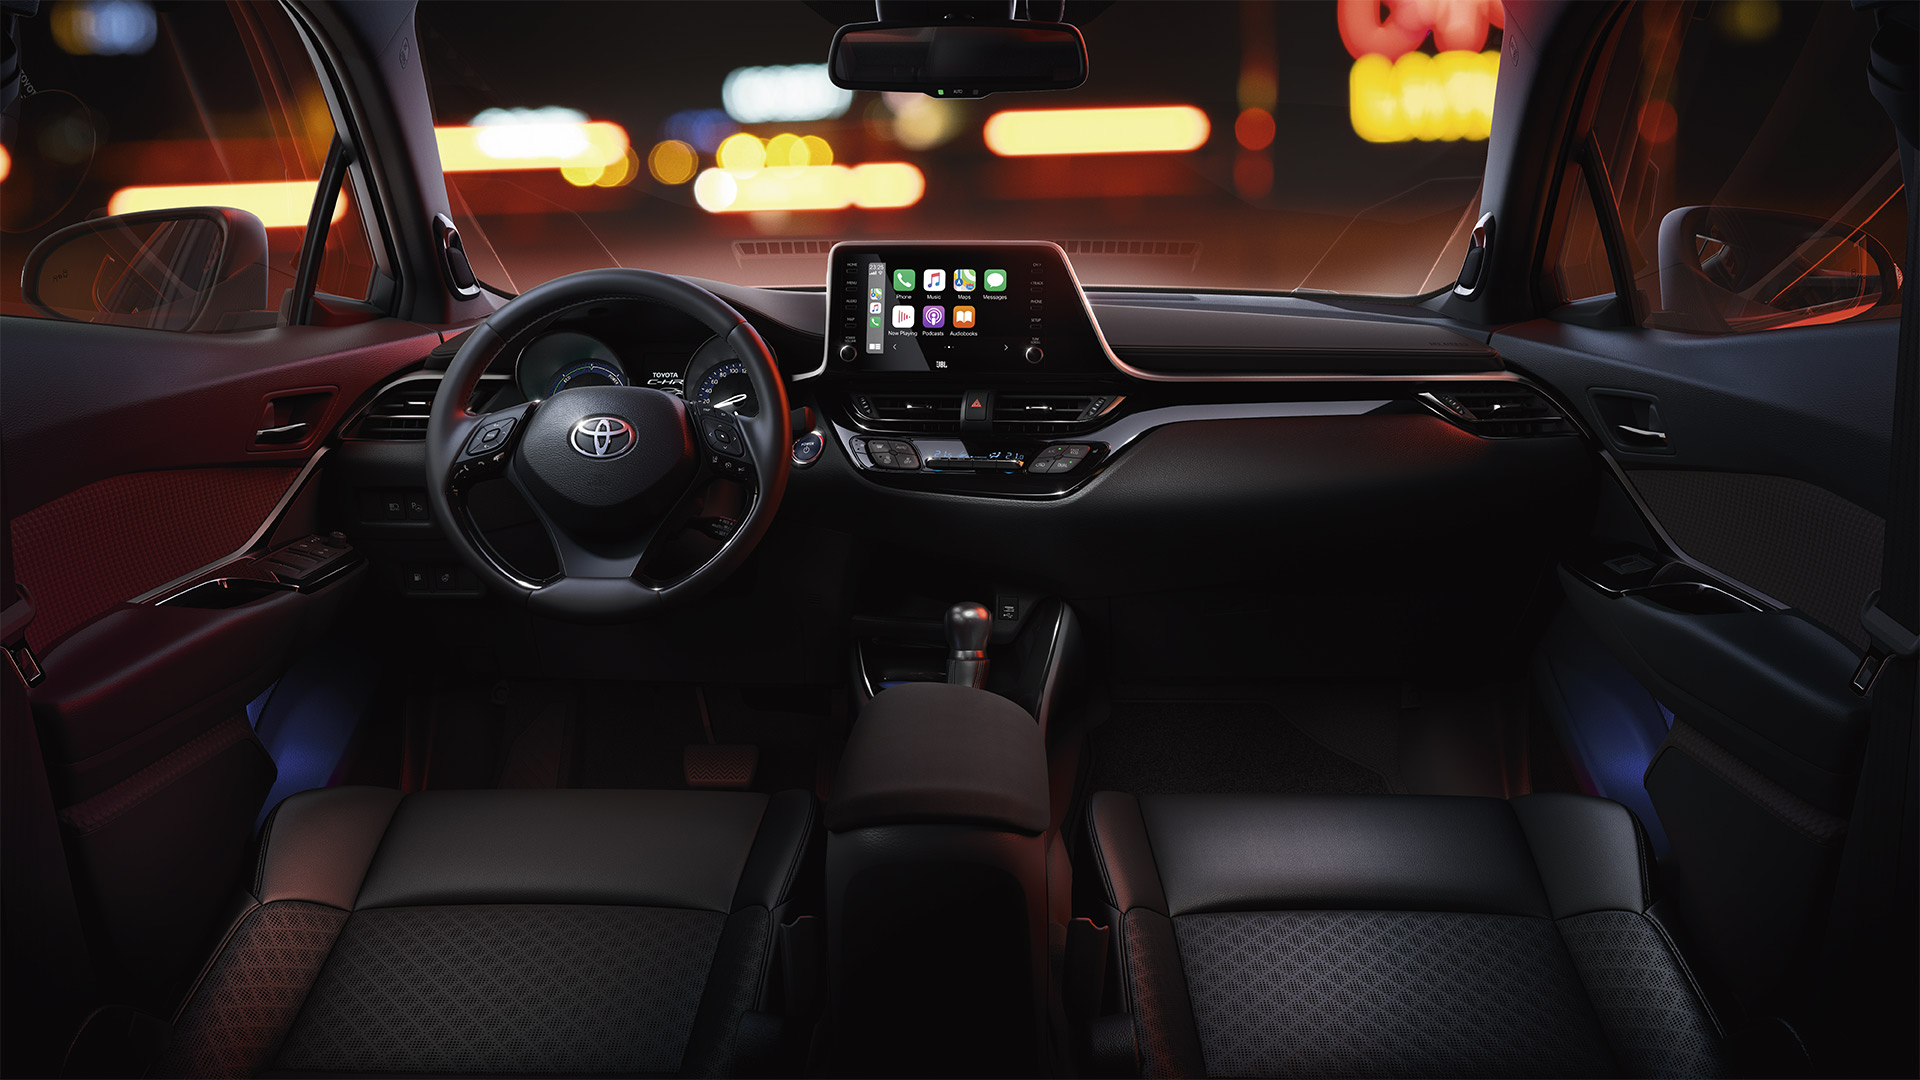 toyota-c-hr-2019-gallery-008-full_tcm-1016-1776345